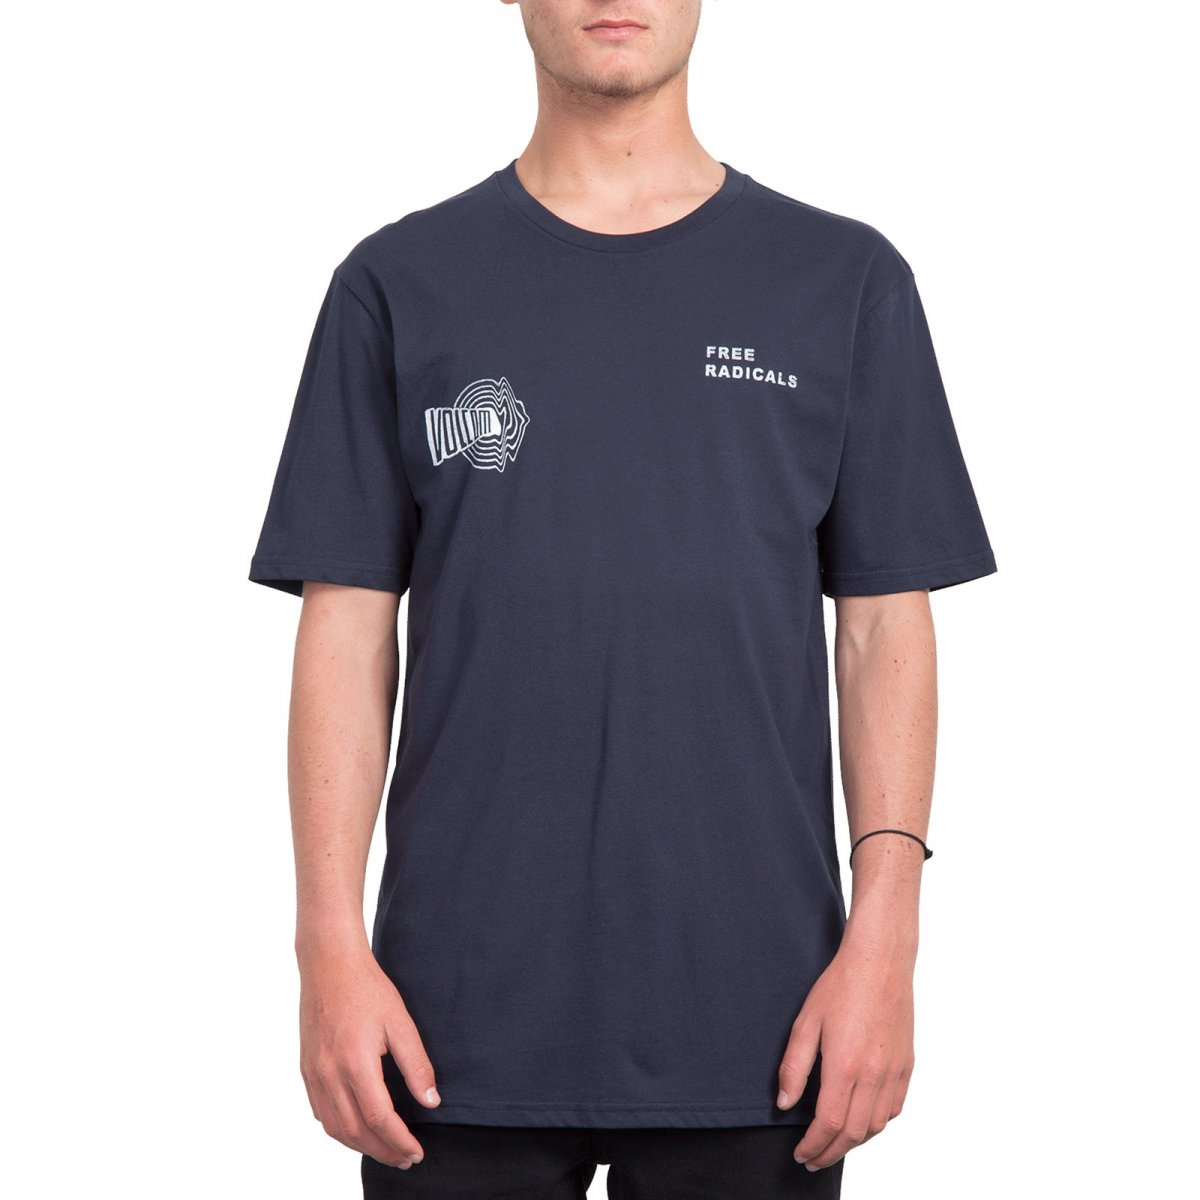 FREE BSC SS TEE